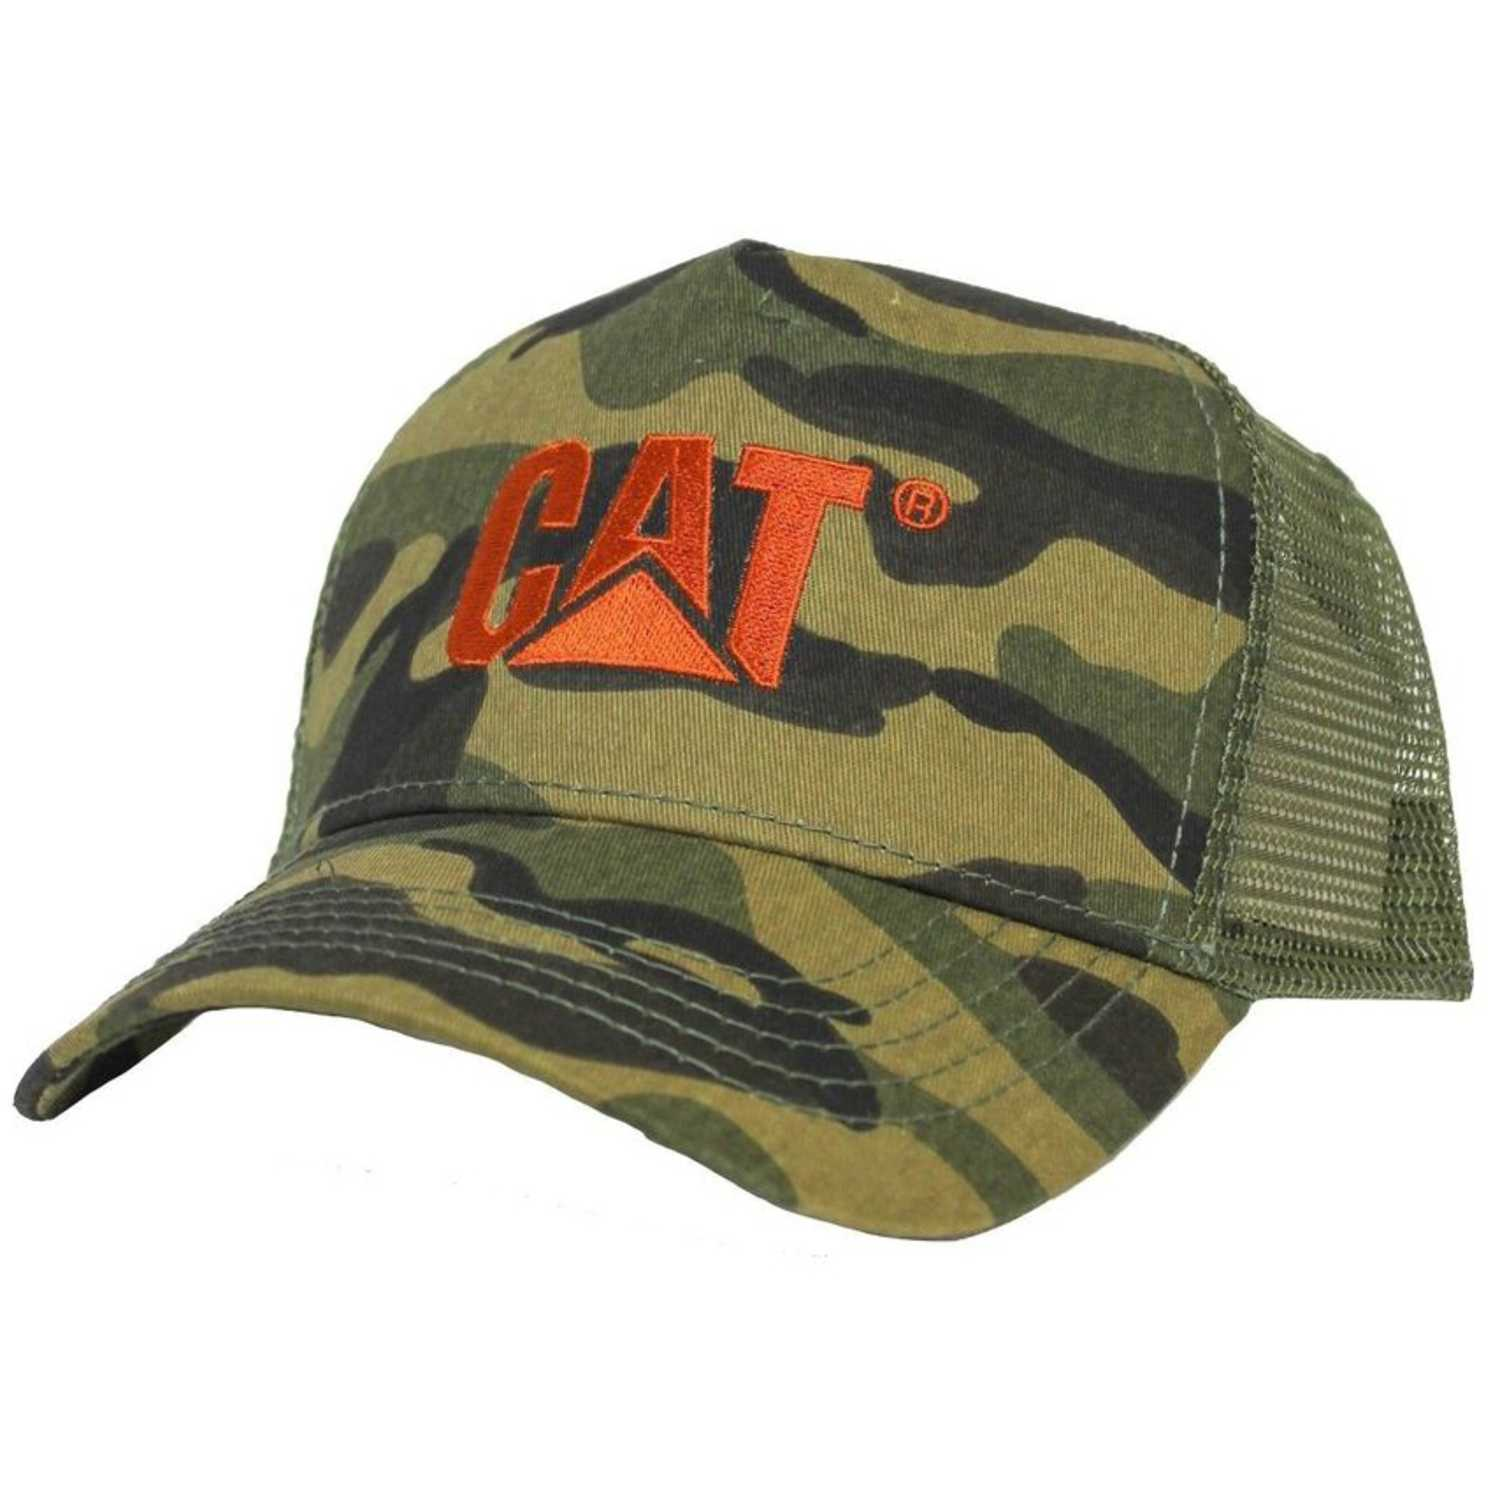 Gorros de Niña CAT Militar design mark mesh hat